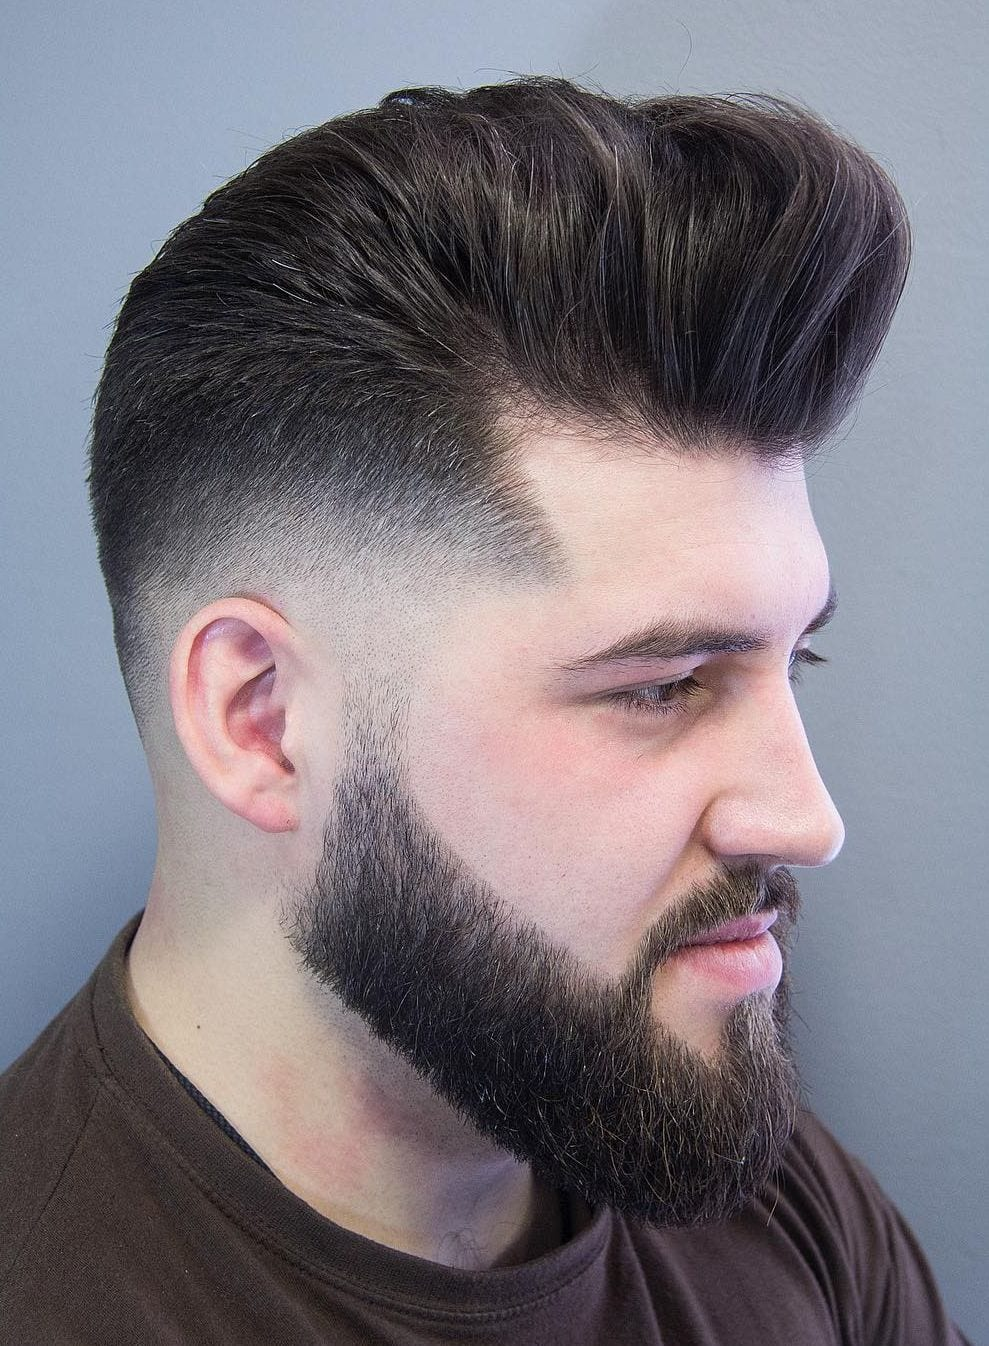 Skin Fade Pompadour with Beard